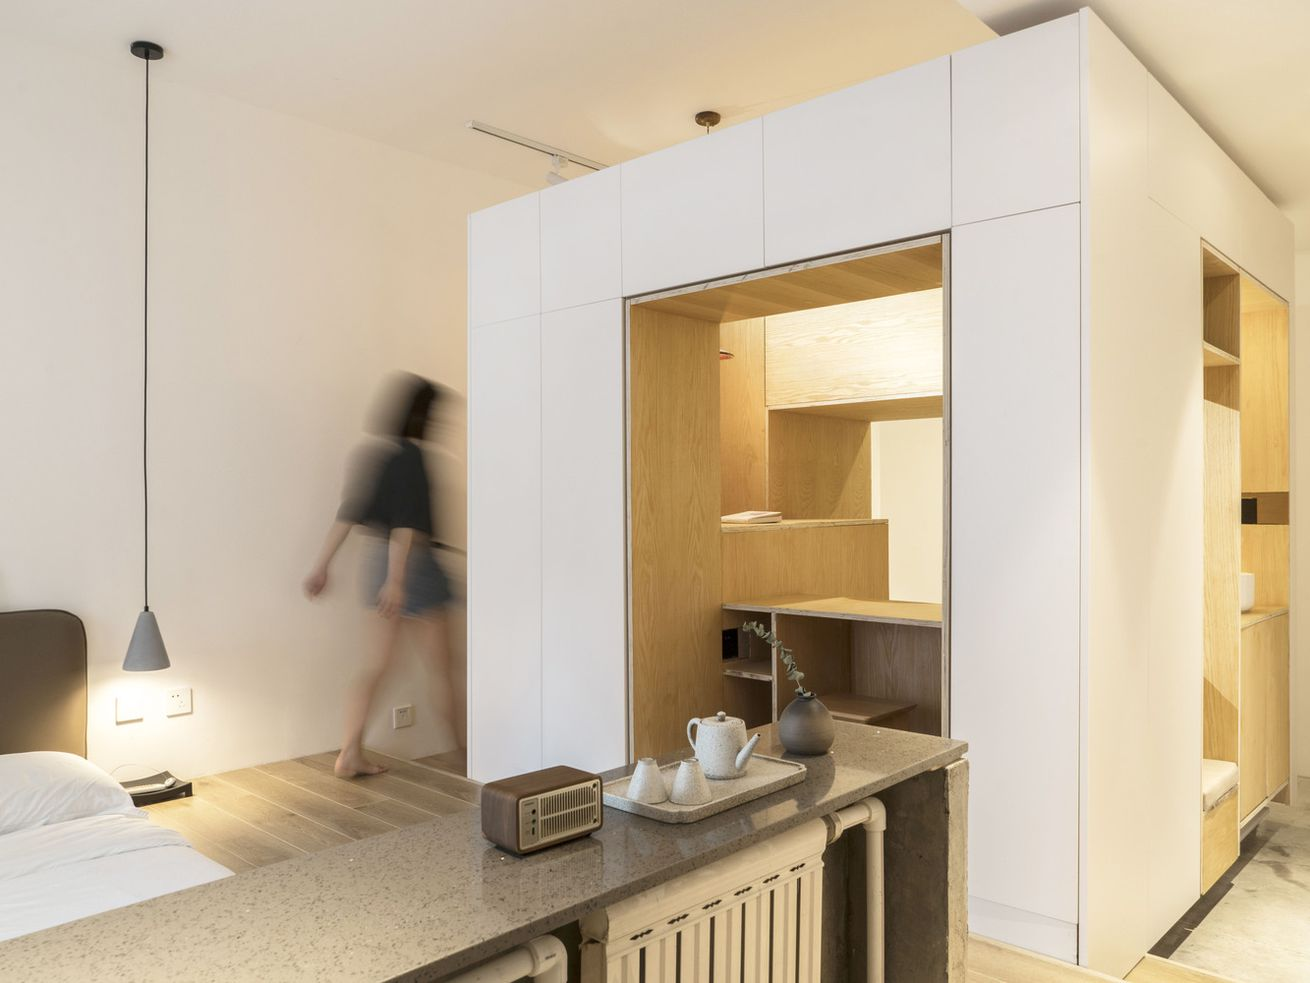 Woman walking through compact apartment; a central module includes storage, surface area, and seating.